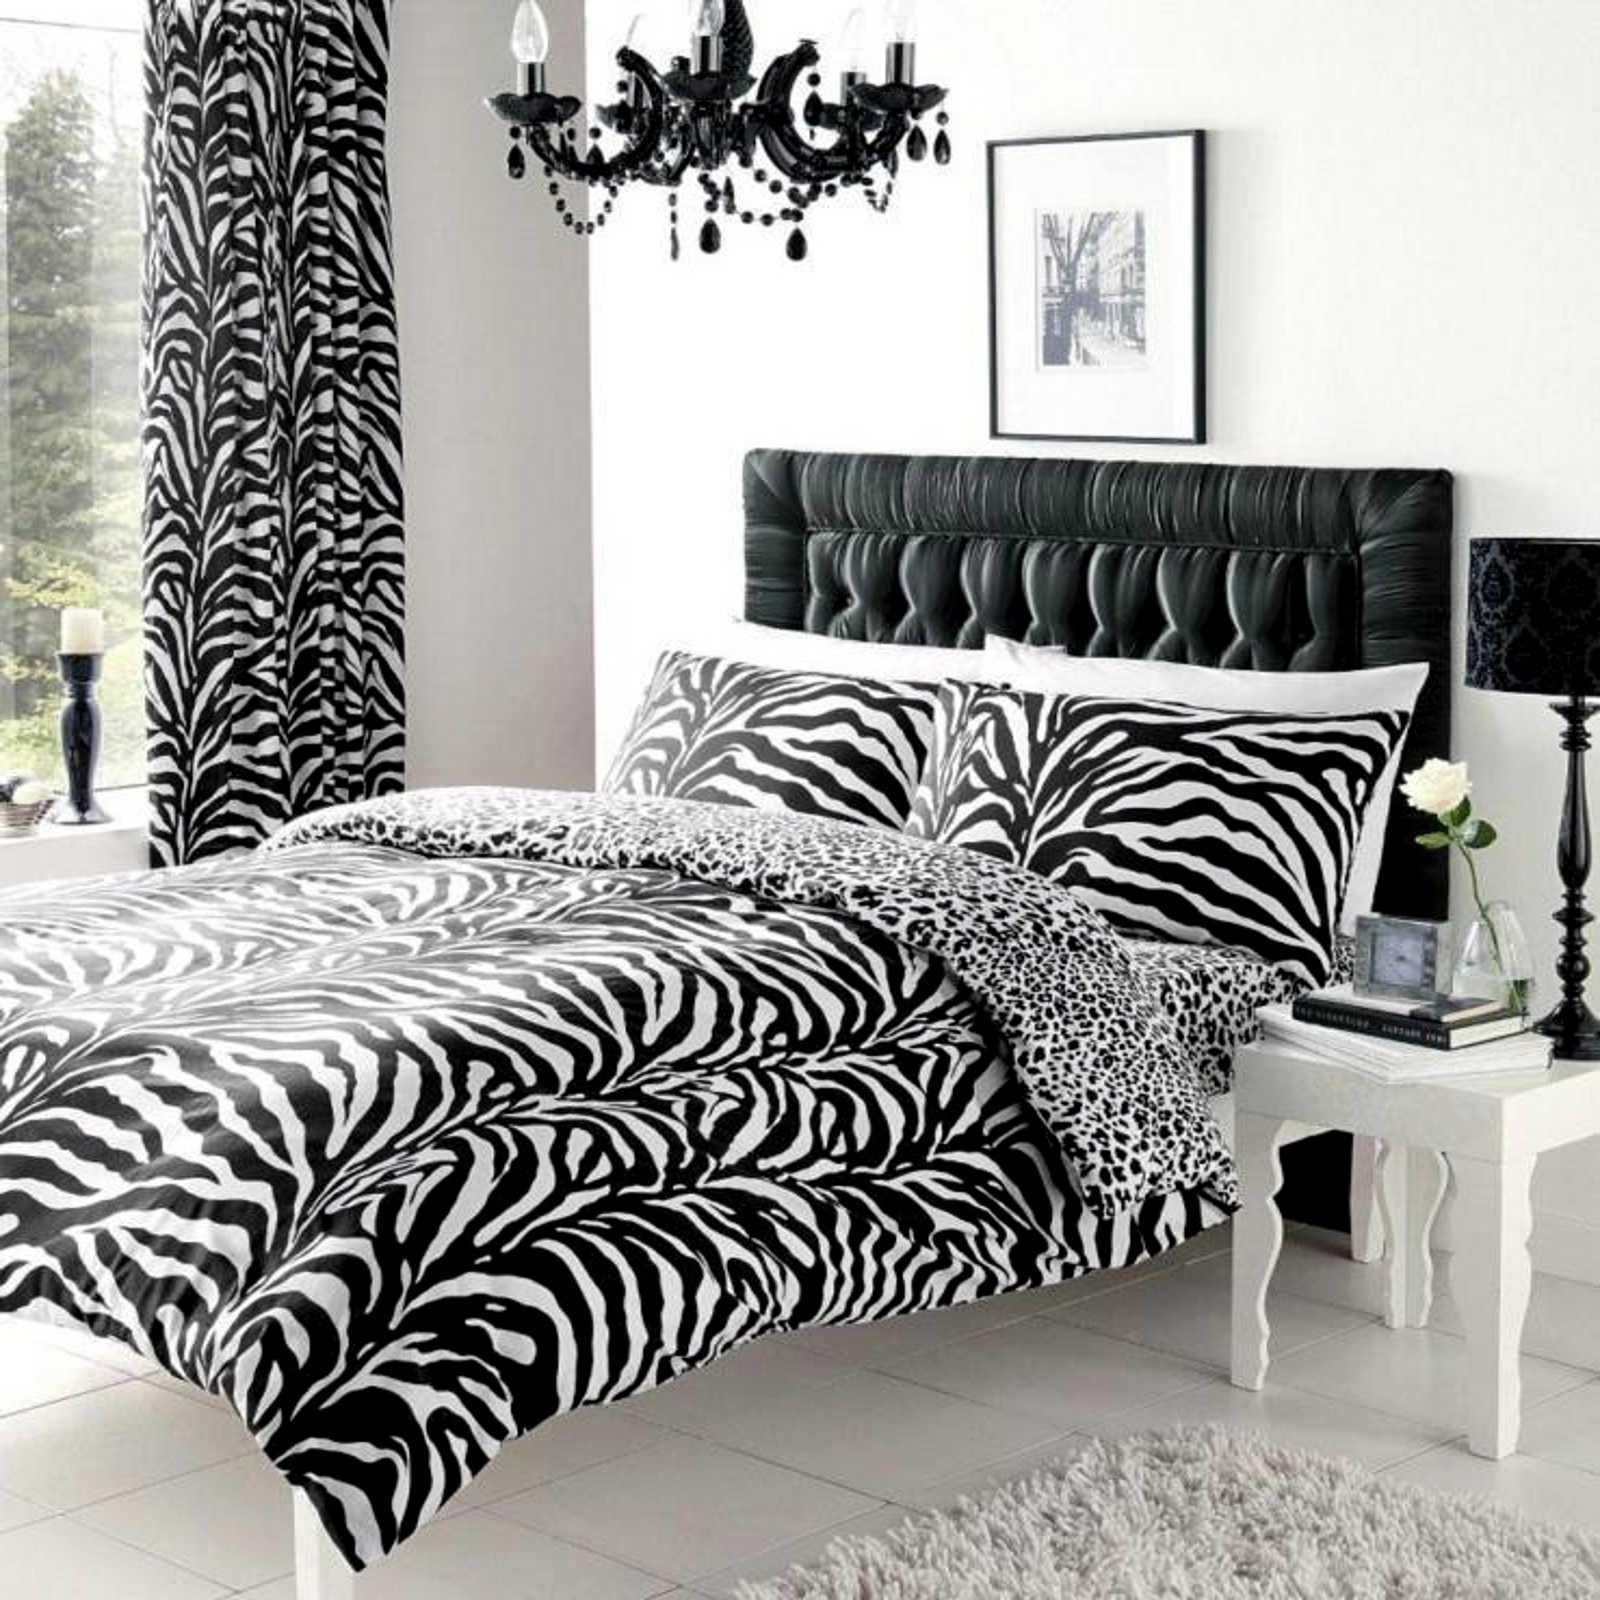 zebra and leopard print king size reversible duvet cover set animal bedding ebay. Black Bedroom Furniture Sets. Home Design Ideas